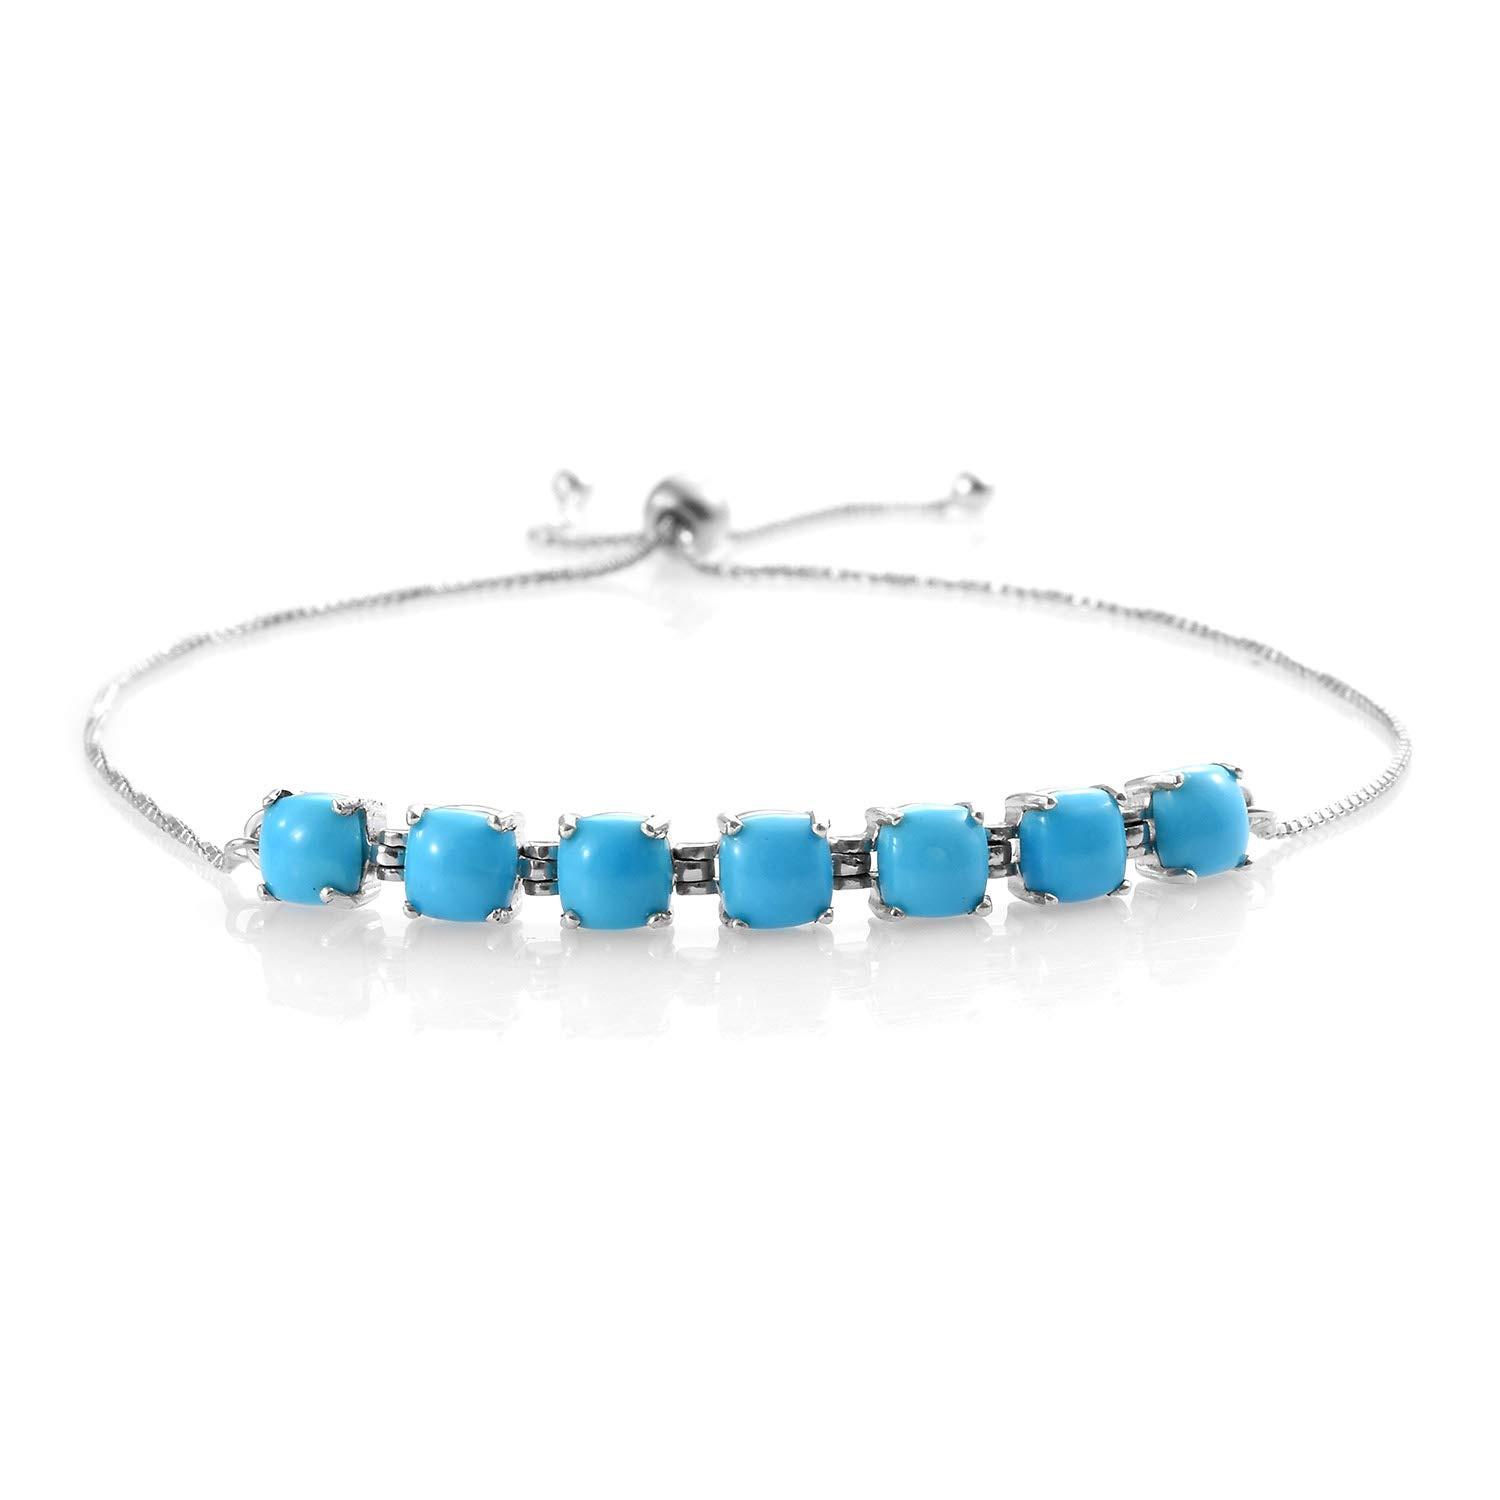 925 Sterling Silver Platinum Plated Cushion Sleeping Beauty Turquoise Bolo Tennis Bracelet for Women